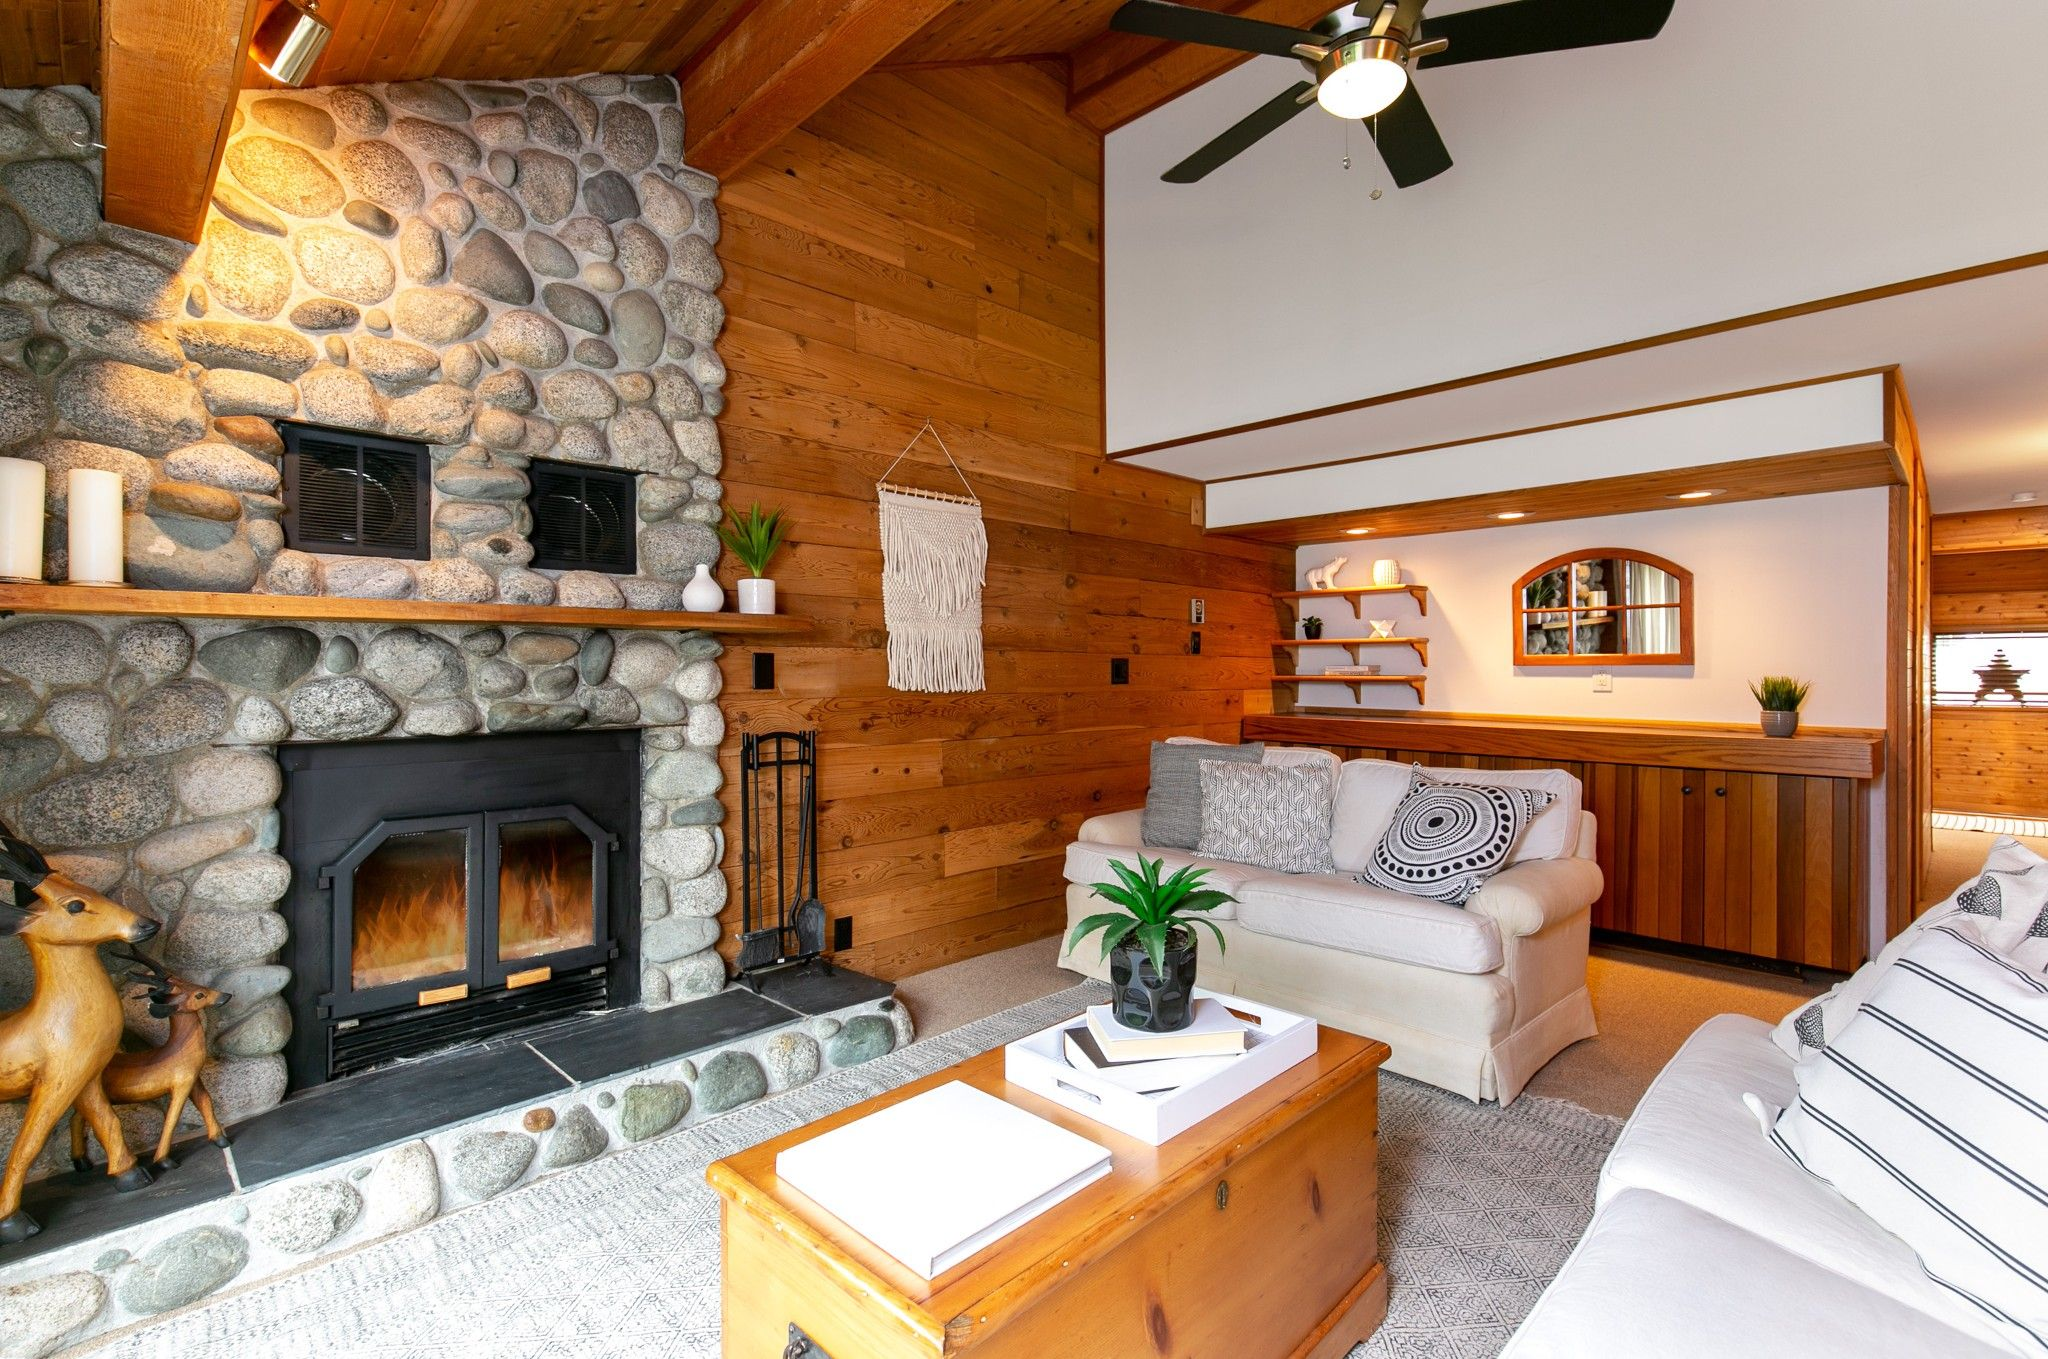 Main Photo: C1 6900 Crabapple Drive in Whistler: Townhouse for sale